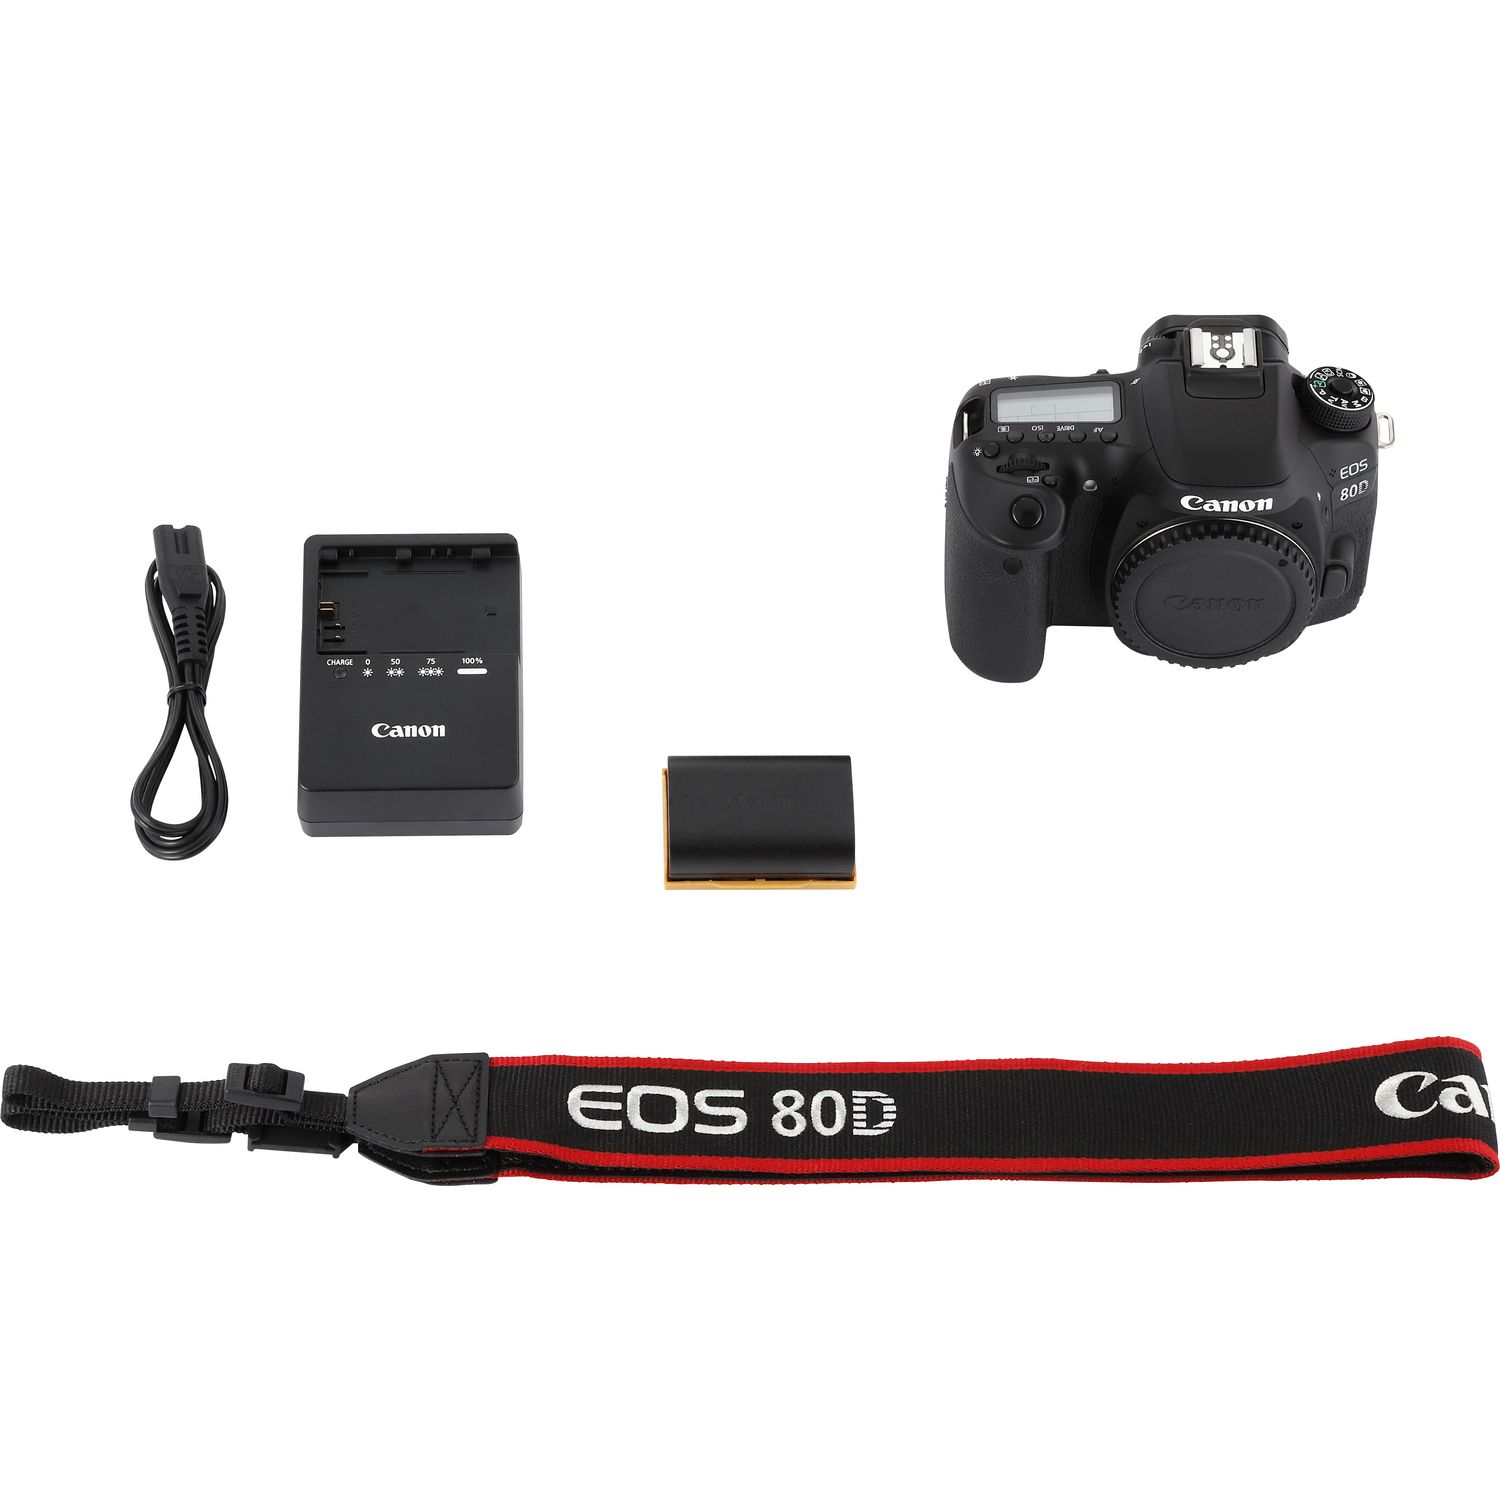 Buy Canon Eos 80d Body In Wi Fi Cameras Ireland Store 6d Kit 24 105mm F 40l Is Usm Wifi And Gps Magnify Image